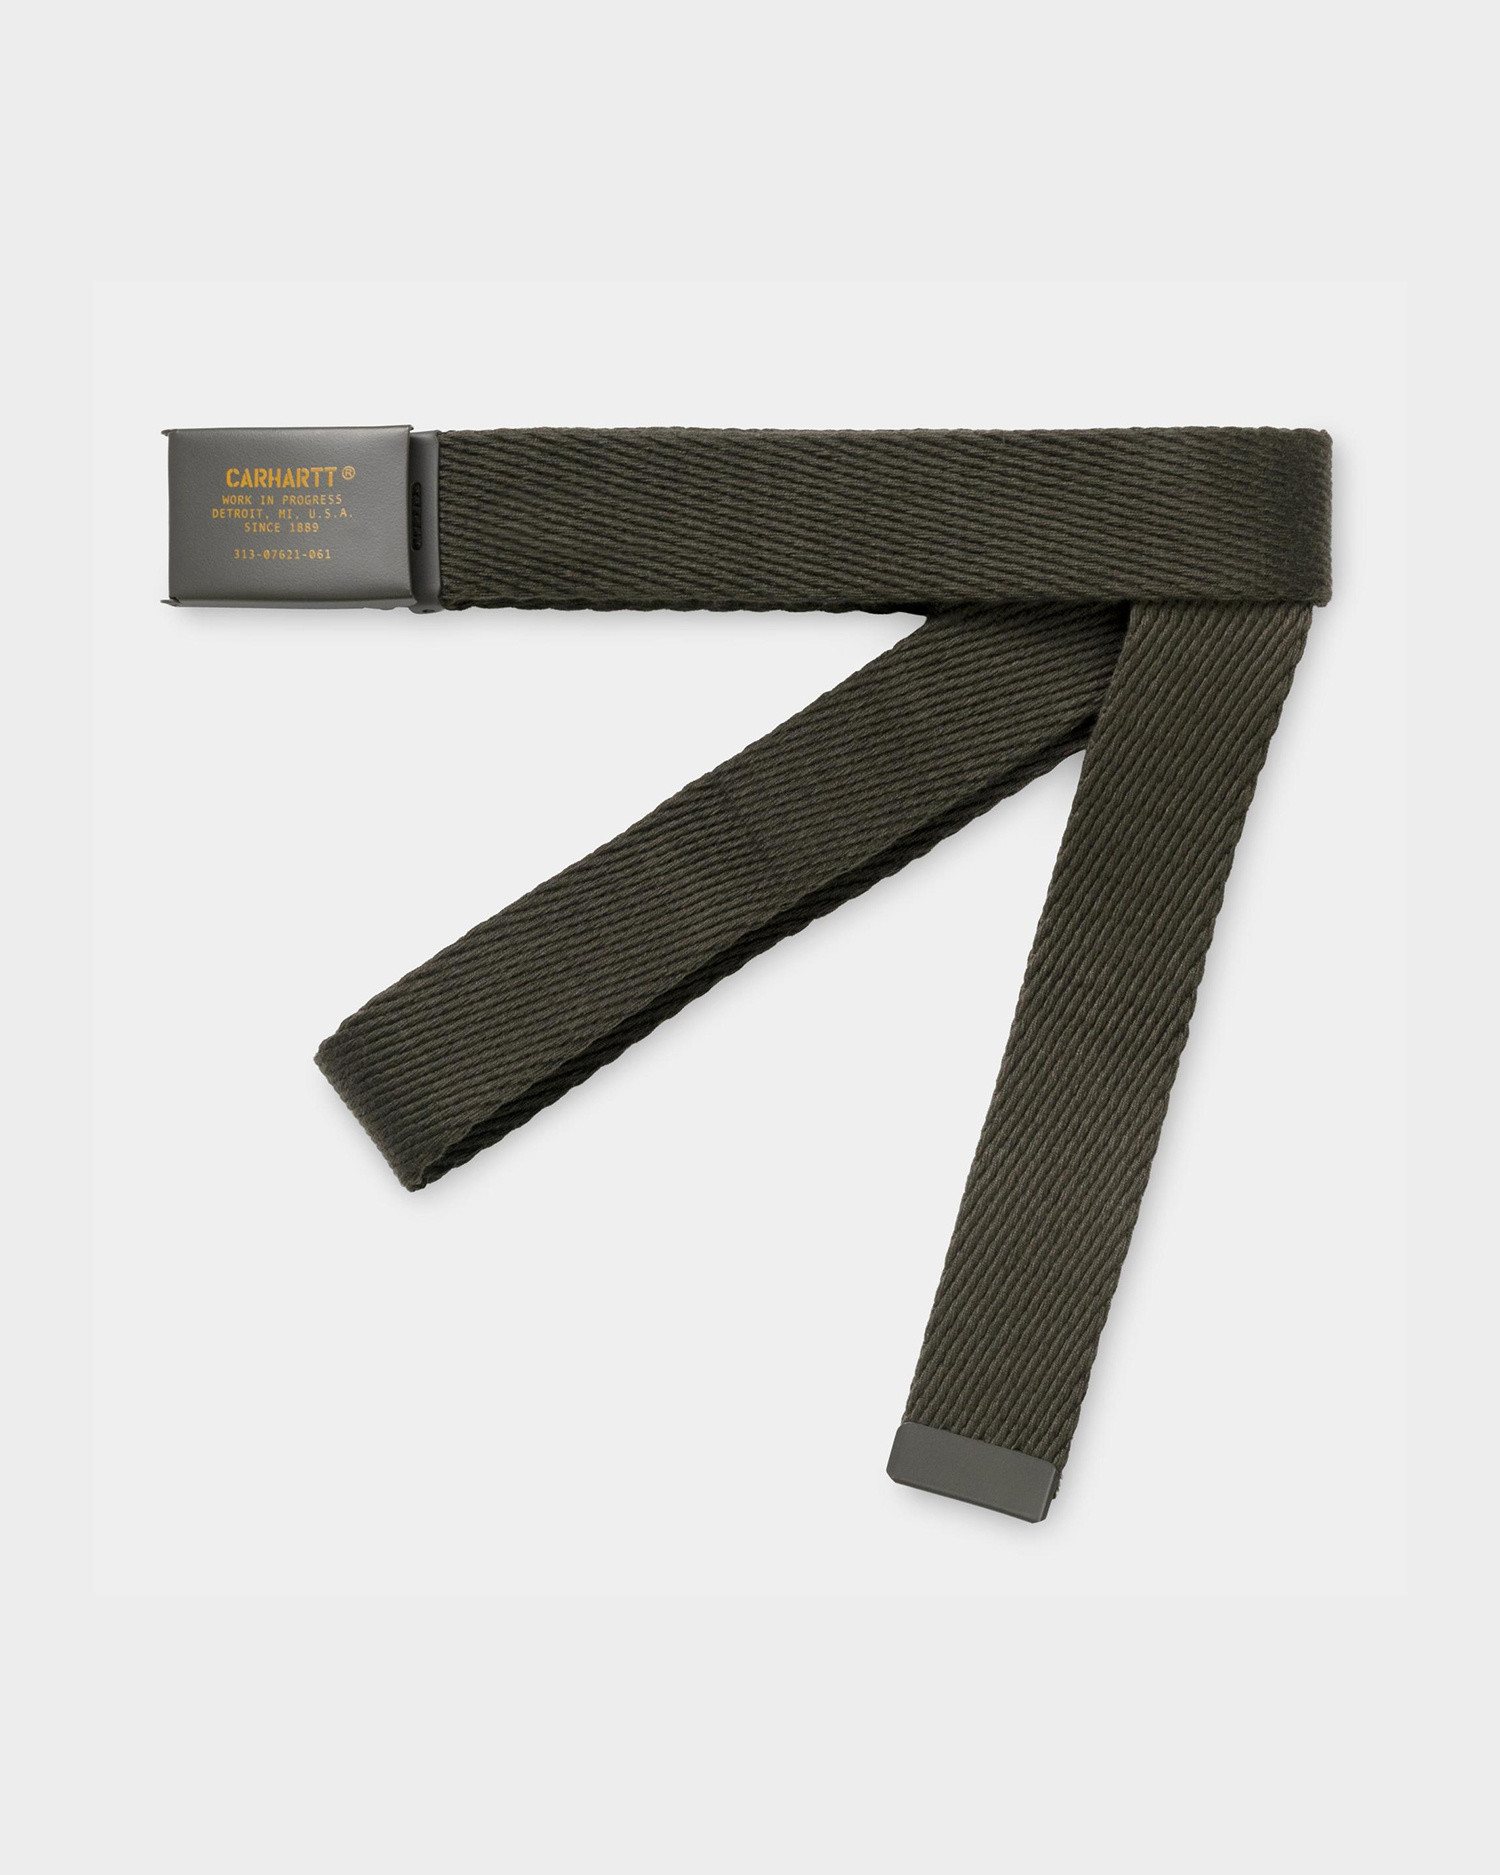 Carhartt Military Printed Belt Cypress